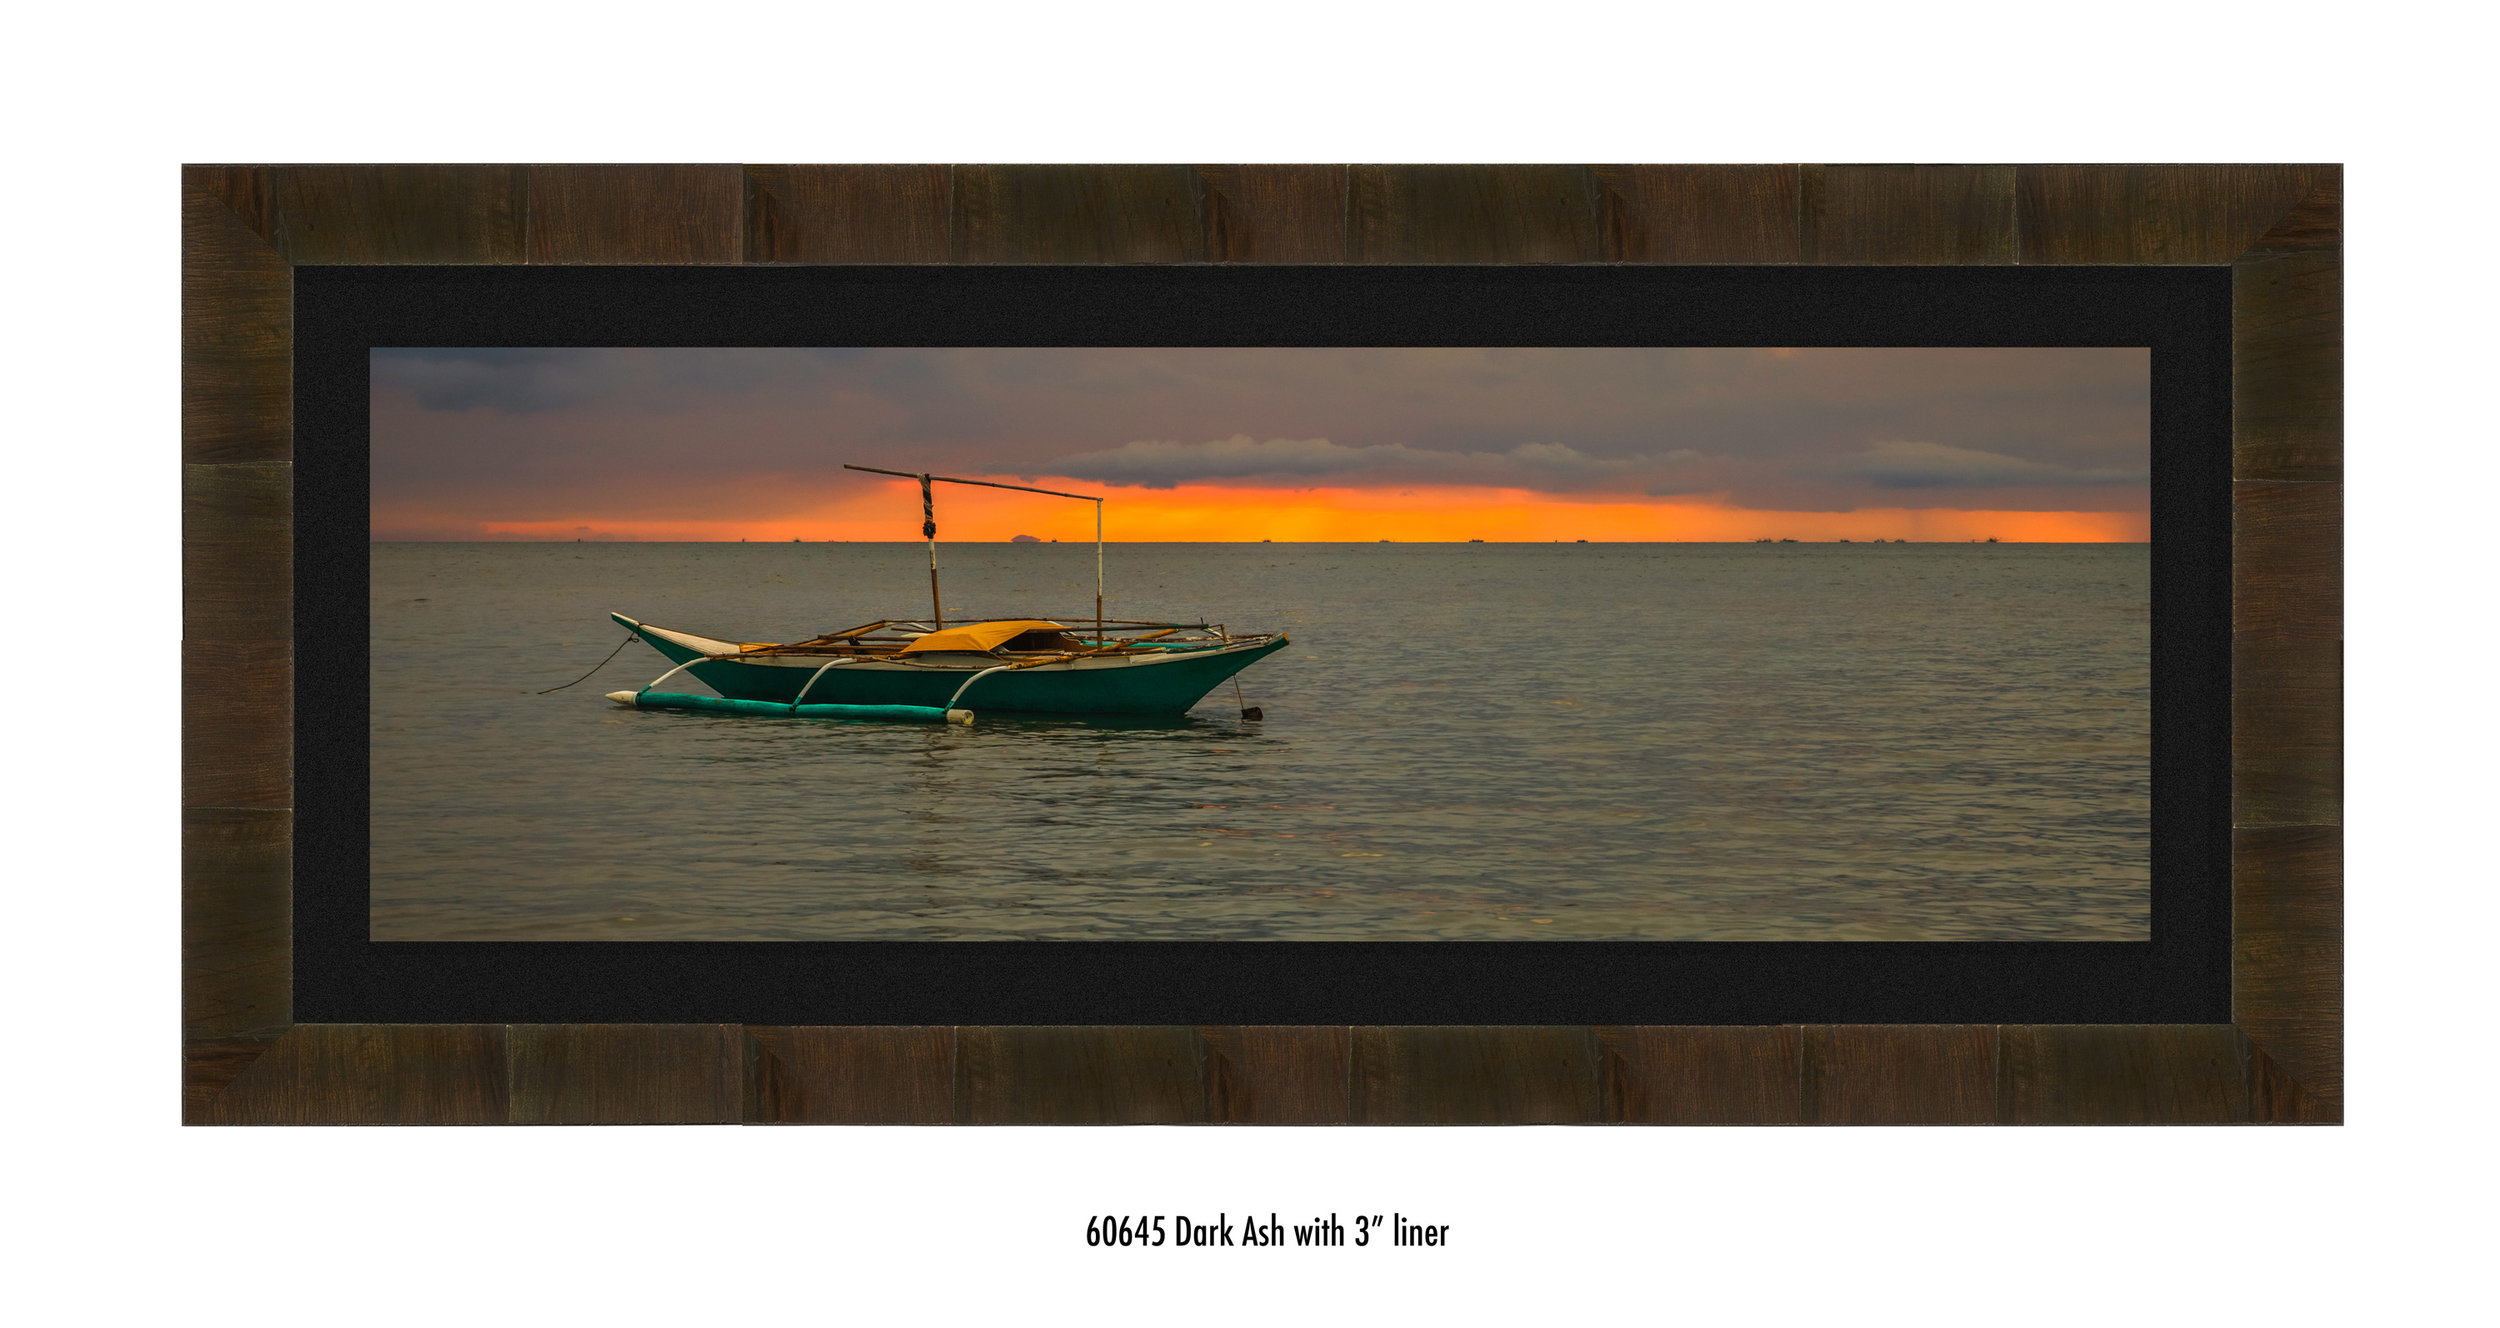 At The Edge of Dusk, maritime fine art photograph captured in the Philippines by Jason Matias in Bellevue, WA